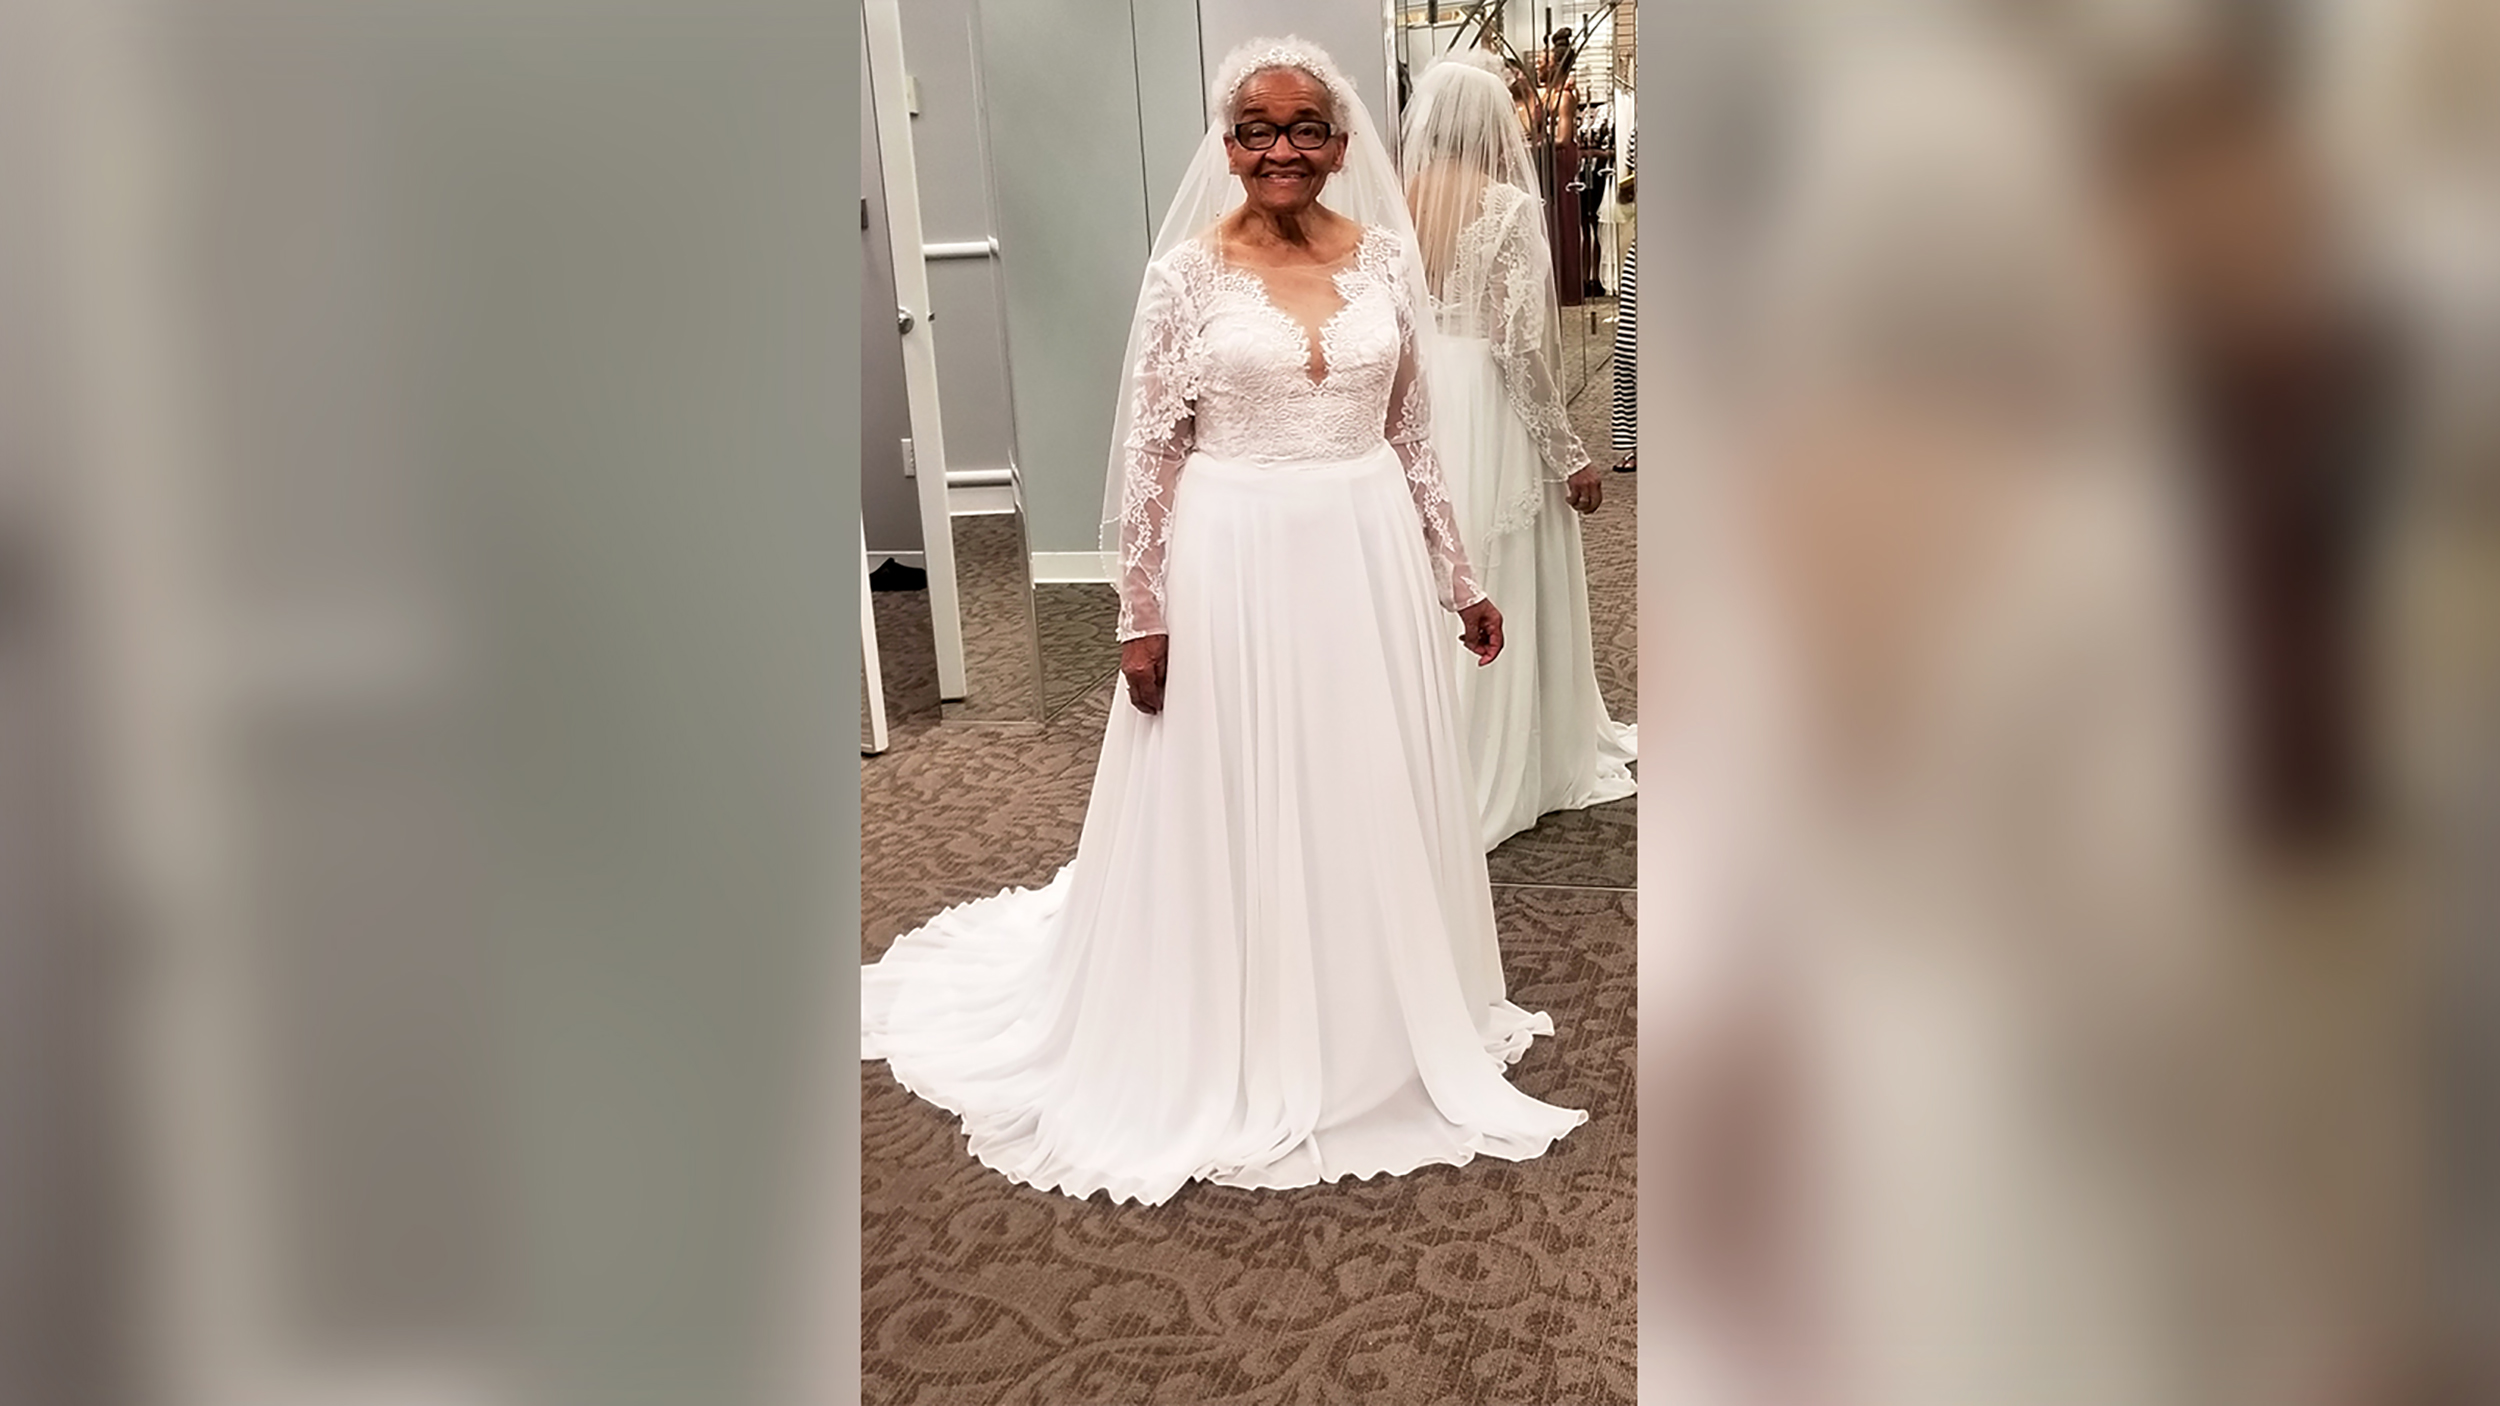 Racism stopped her from trying on a wedding dress. Seventy years ...